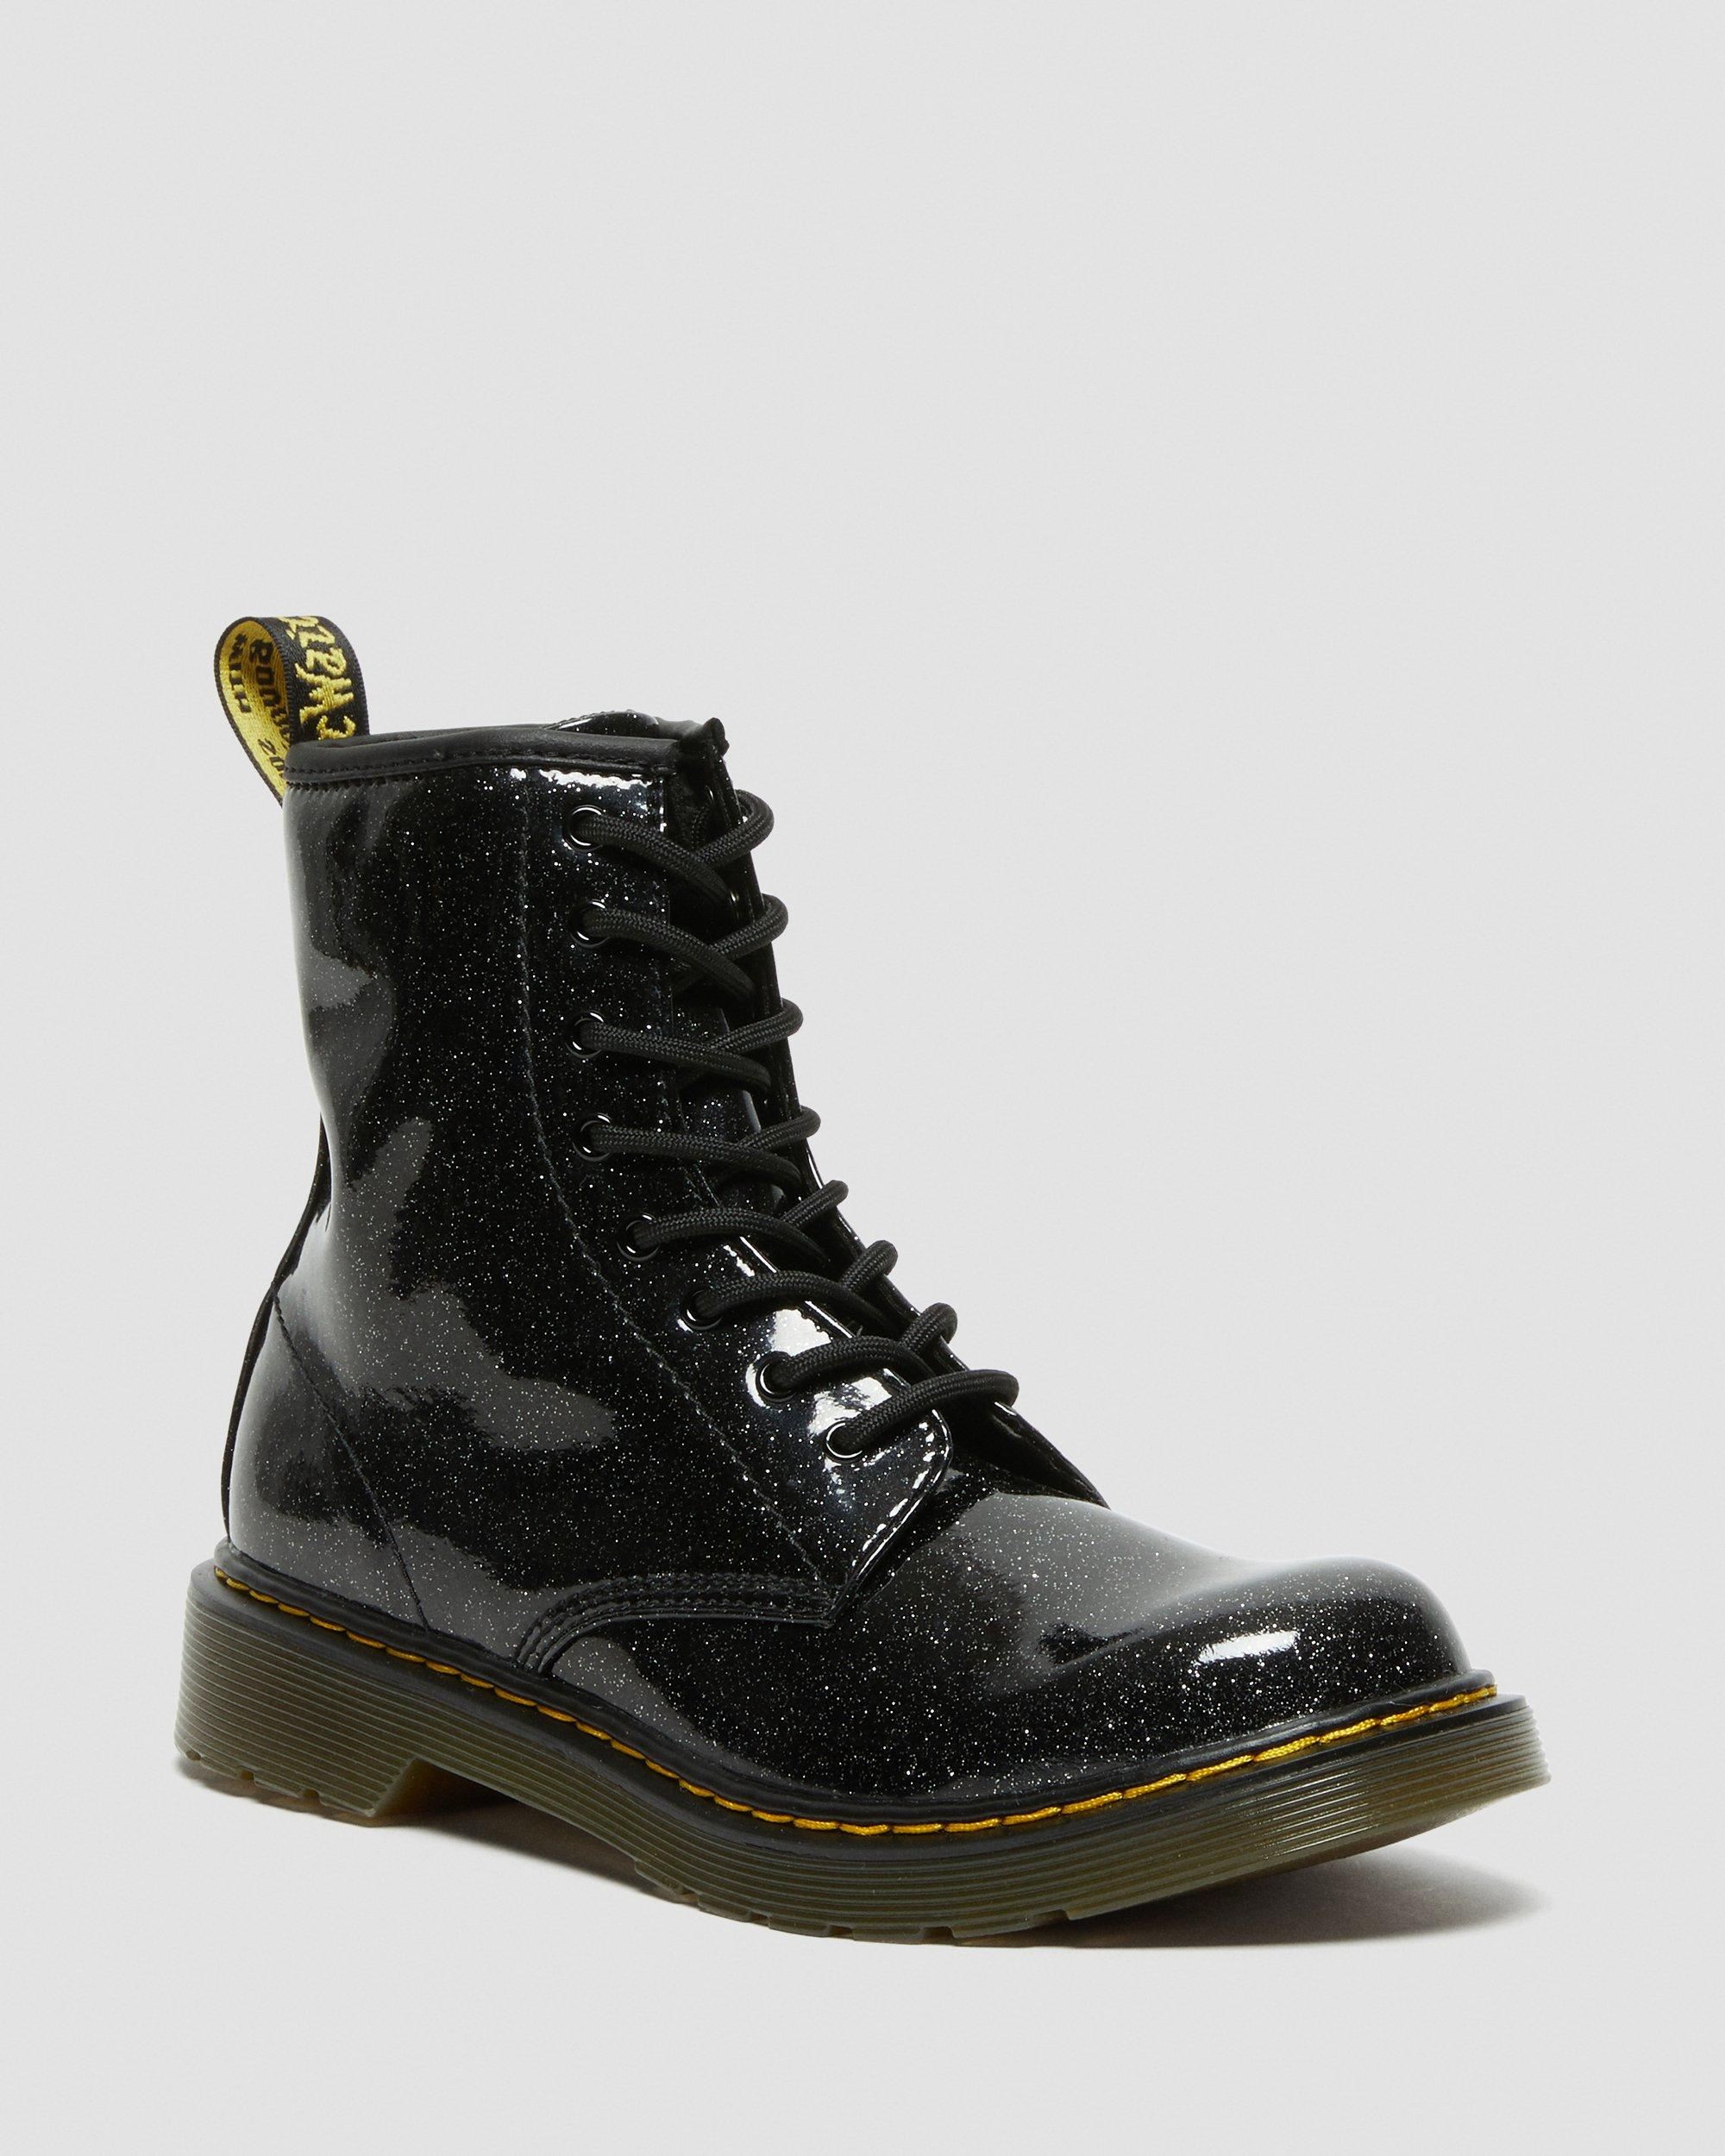 YOUTH 1460 GLITTER LACE UP BOOTS   Kids   Dr. Martens Official